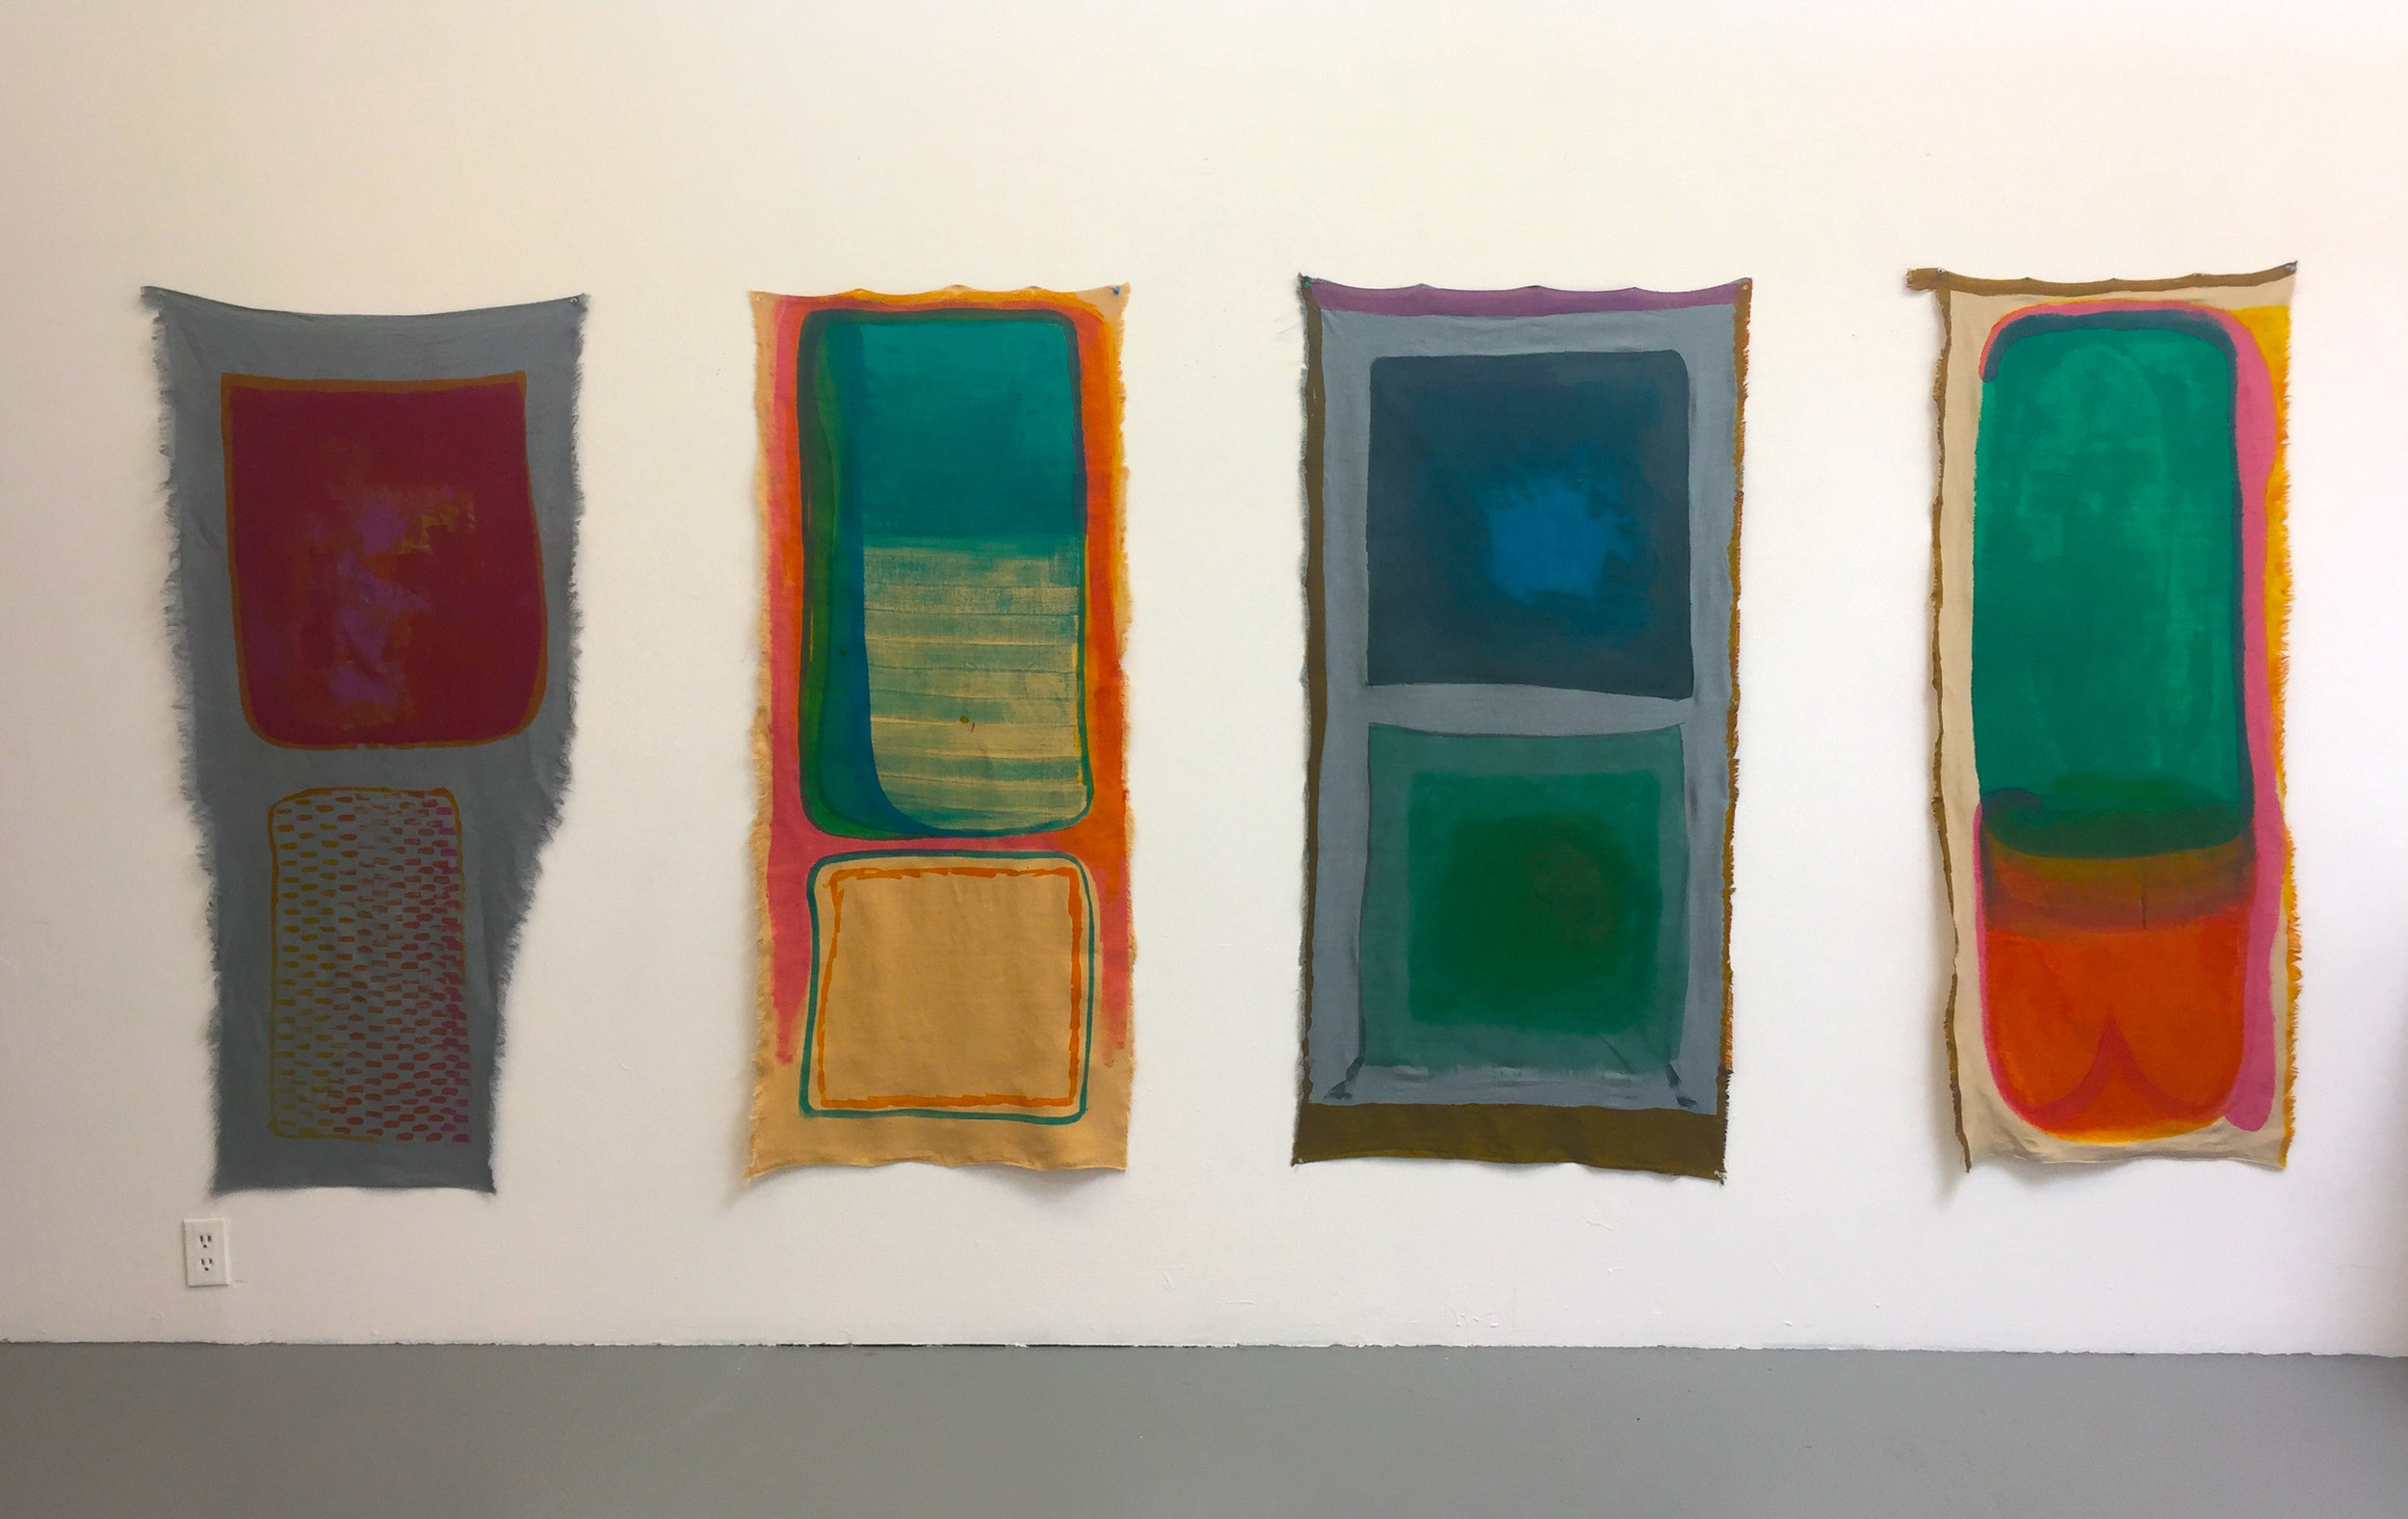 Sinks 1, 2, 3 & 4 hand painted dye on linen 24 x 60 inches each  2017